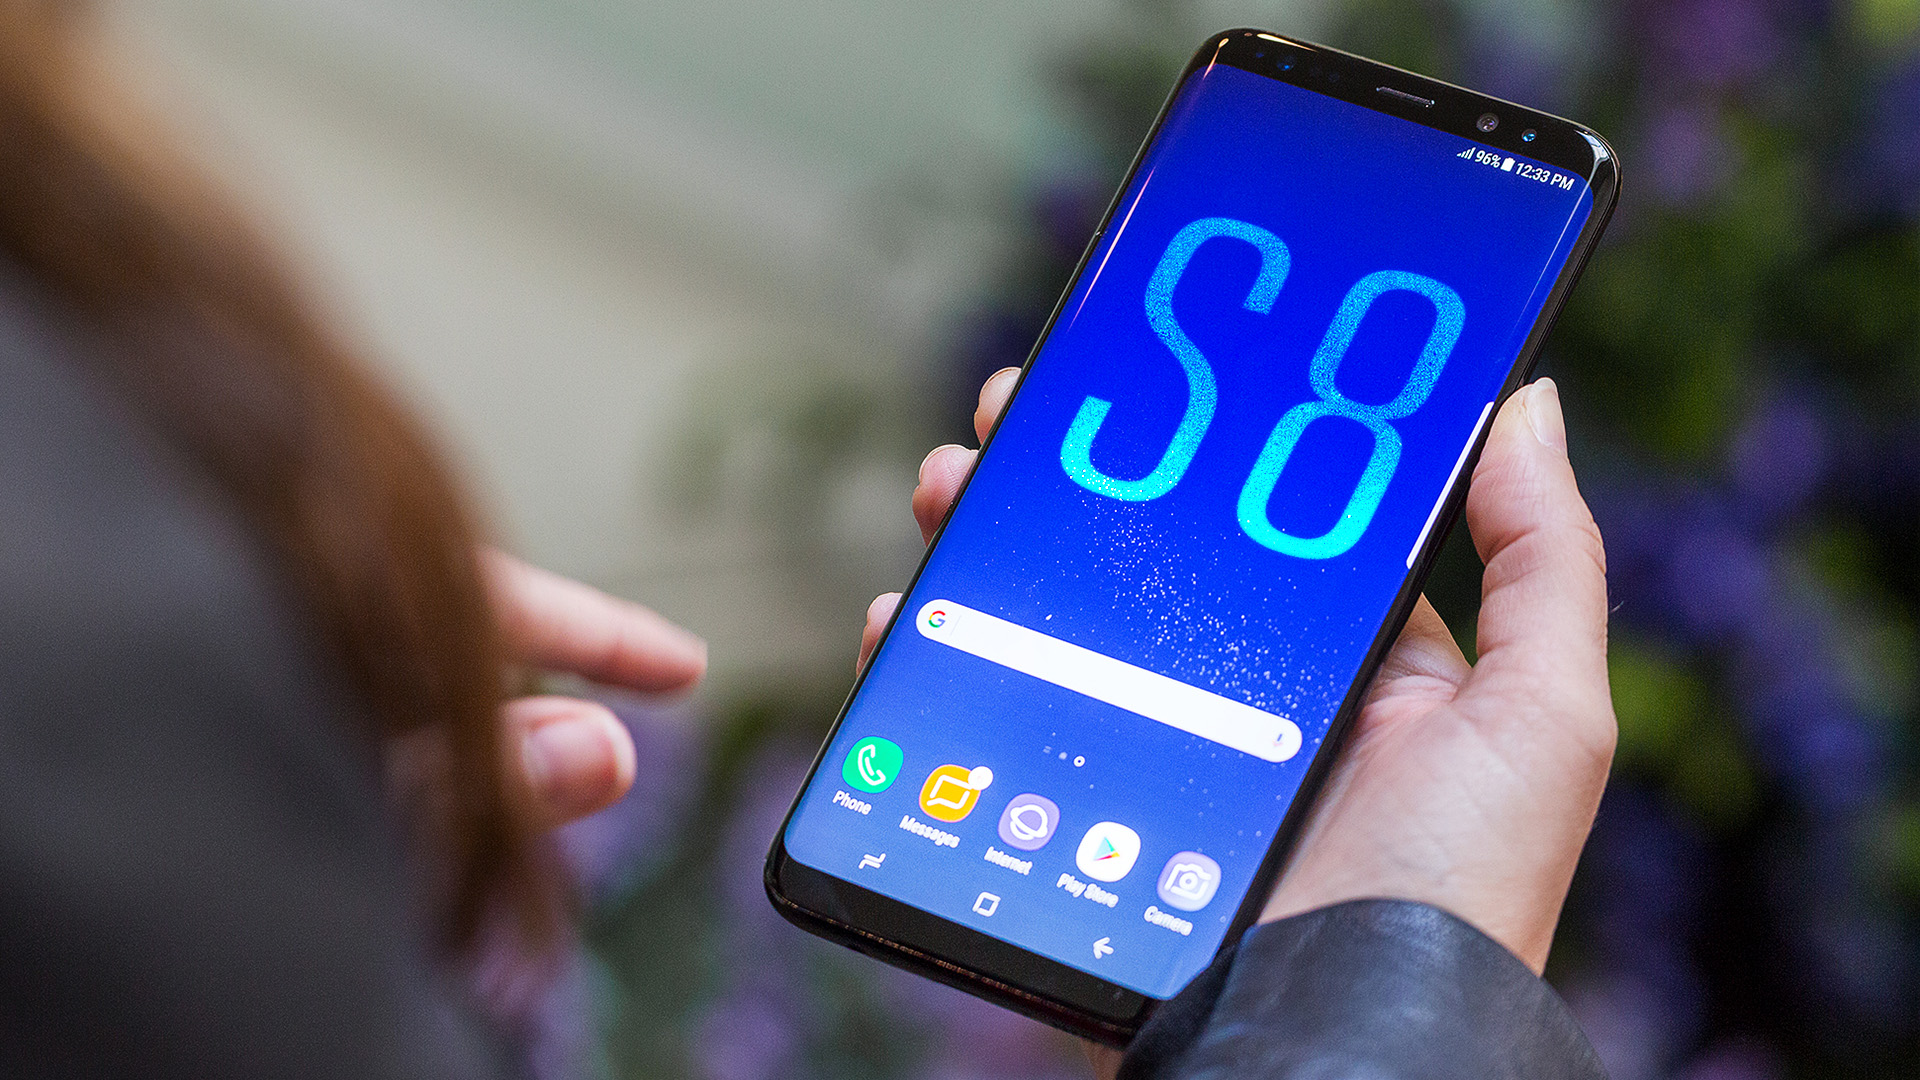 Samsung's Bixby in tough challenge to rivals